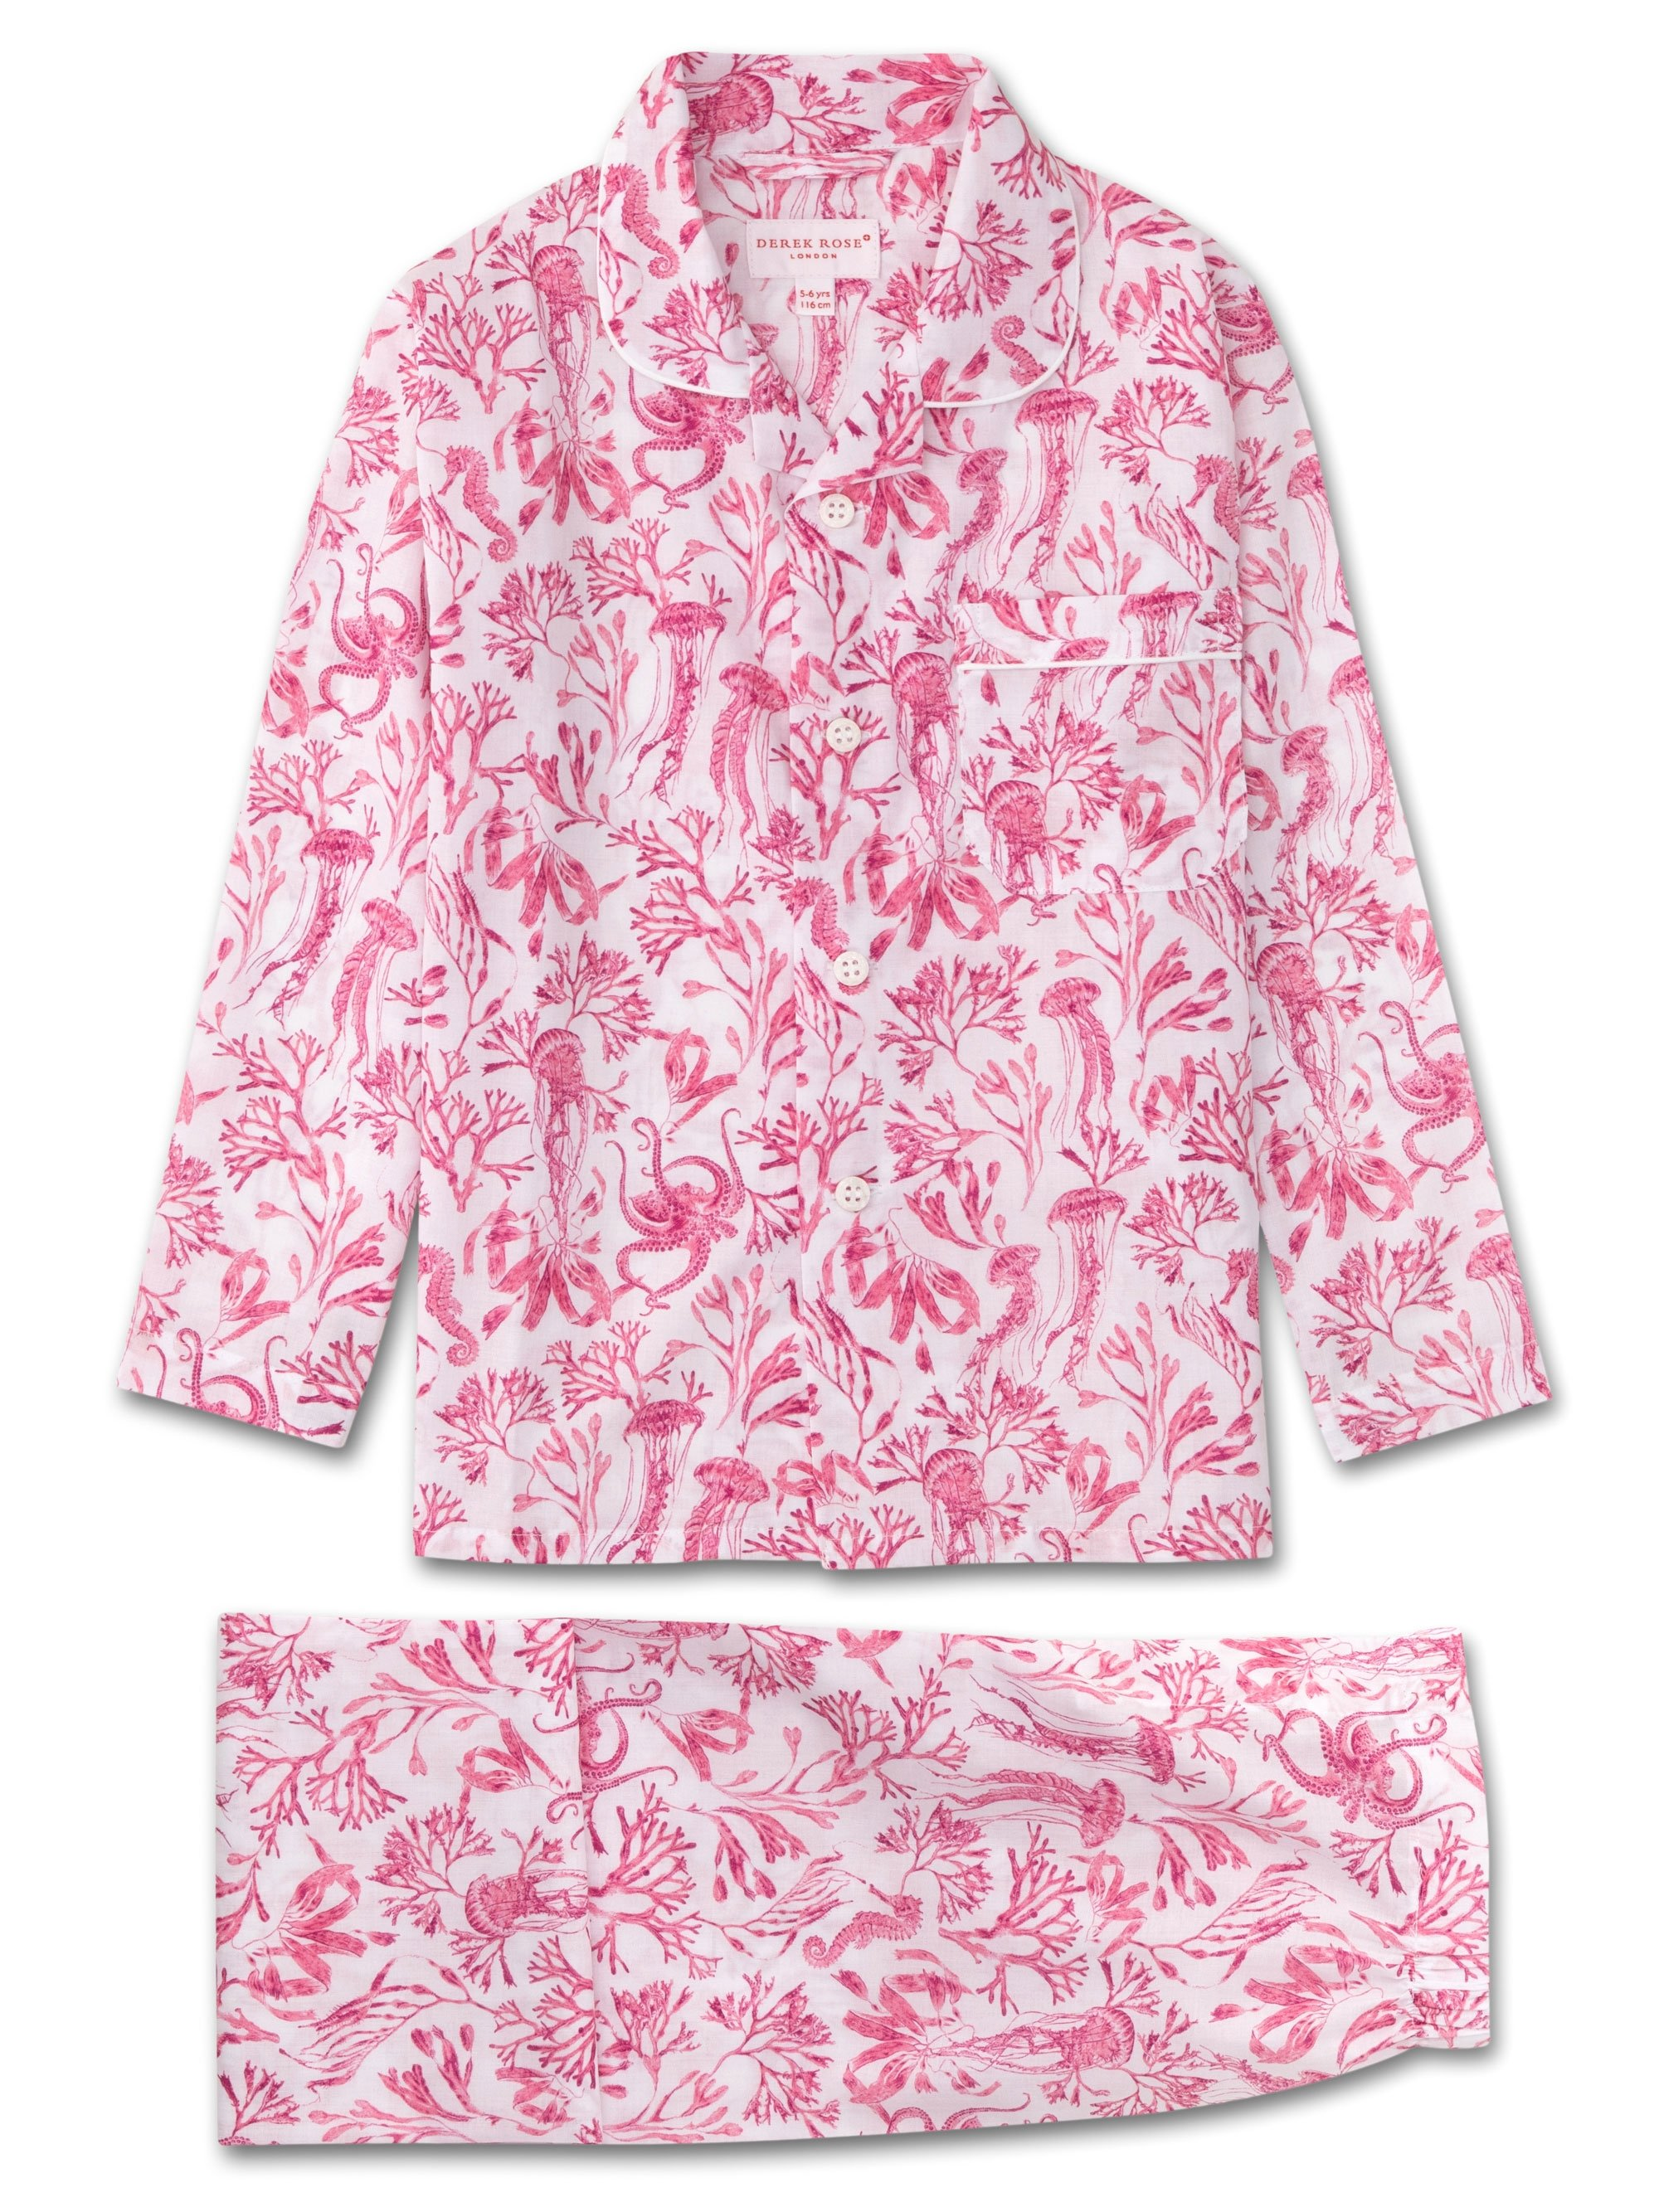 Kids' Pyjamas Ledbury 22 Cotton Batiste Pink